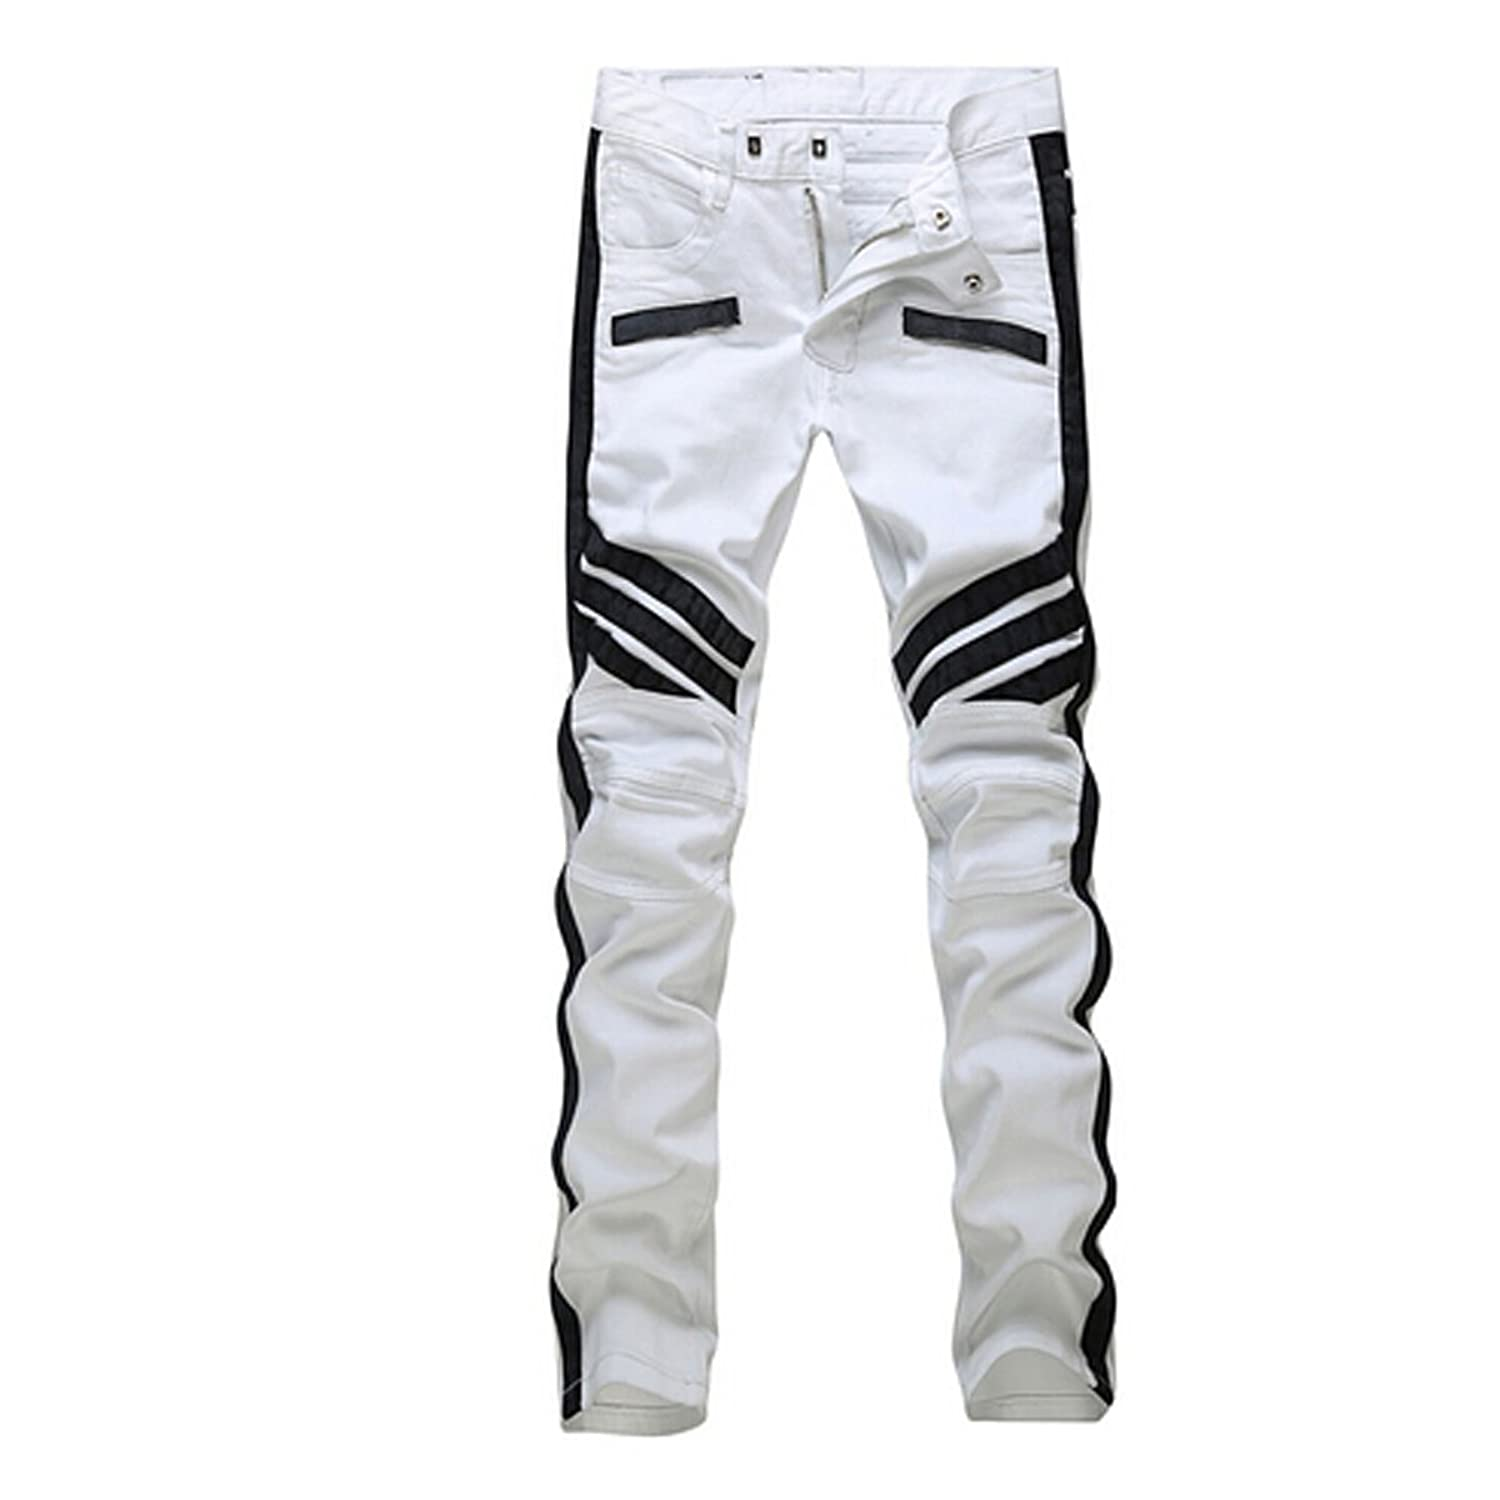 Krralinlin Men White Straight Distressed Ripped Denim Casual Pants ...